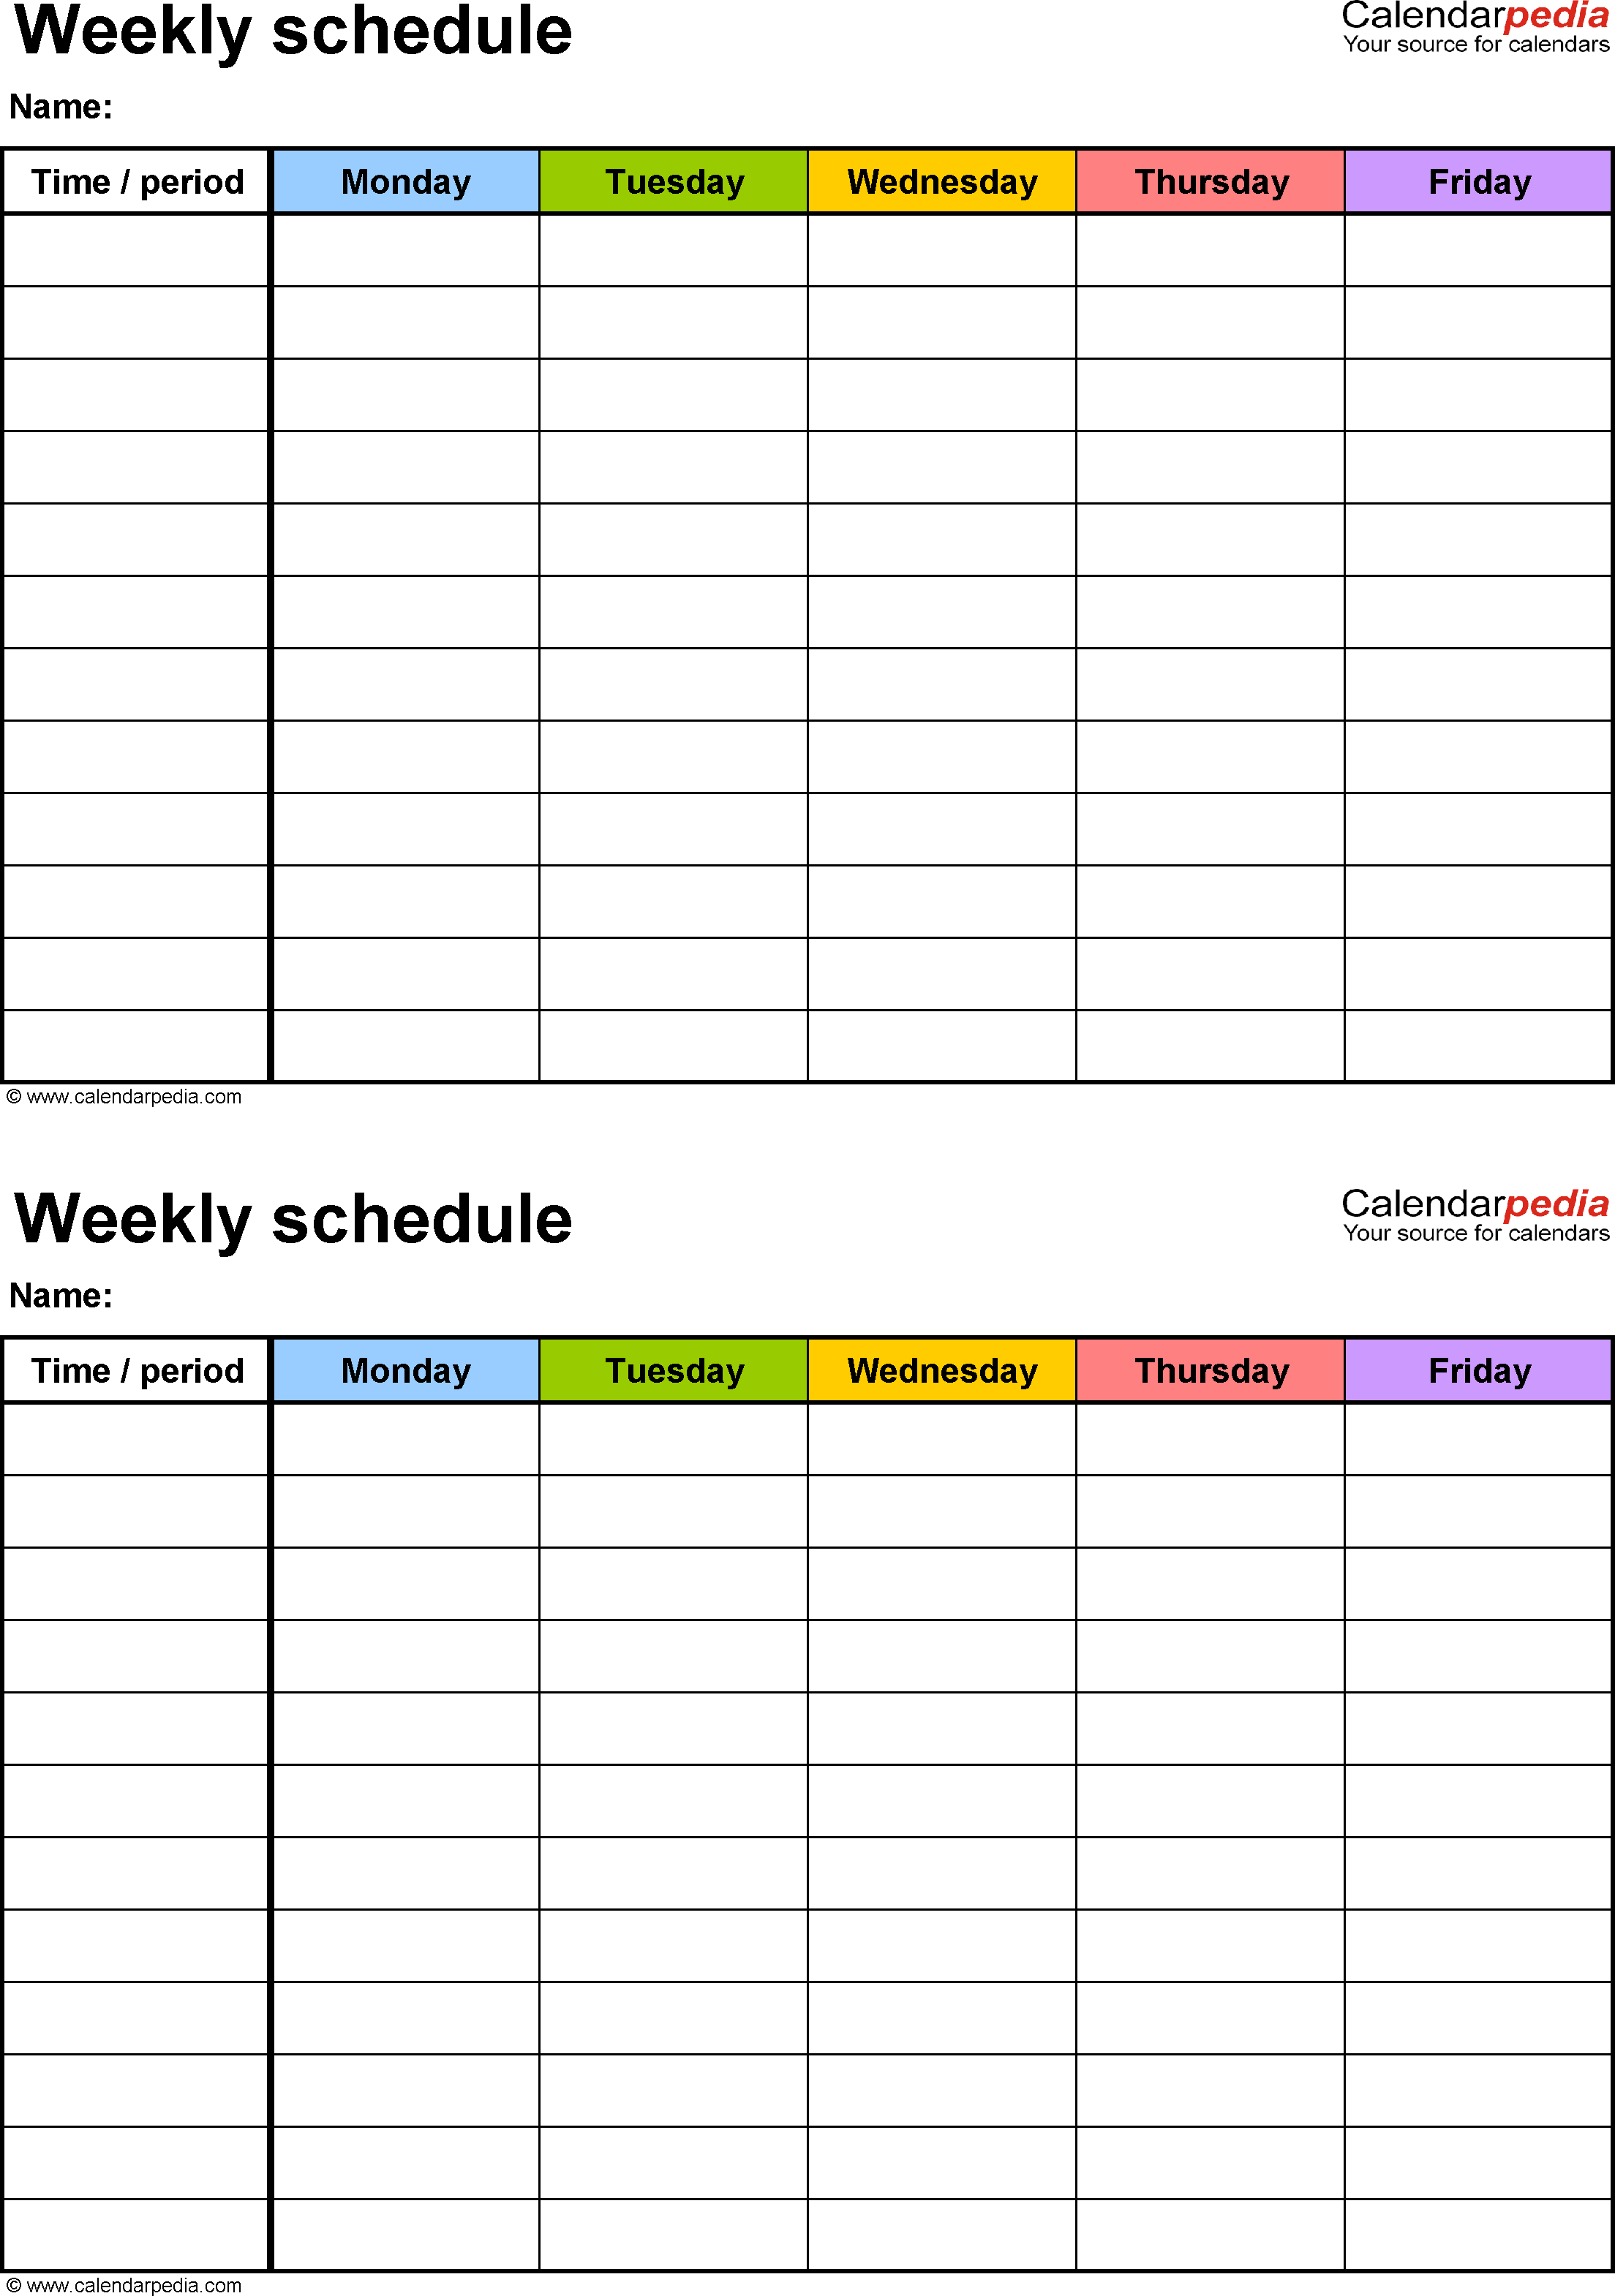 Free Weekly Schedule Templates For Word - 18 Templates intended for 5 Day Weekly Timetable Blank 6 Periods